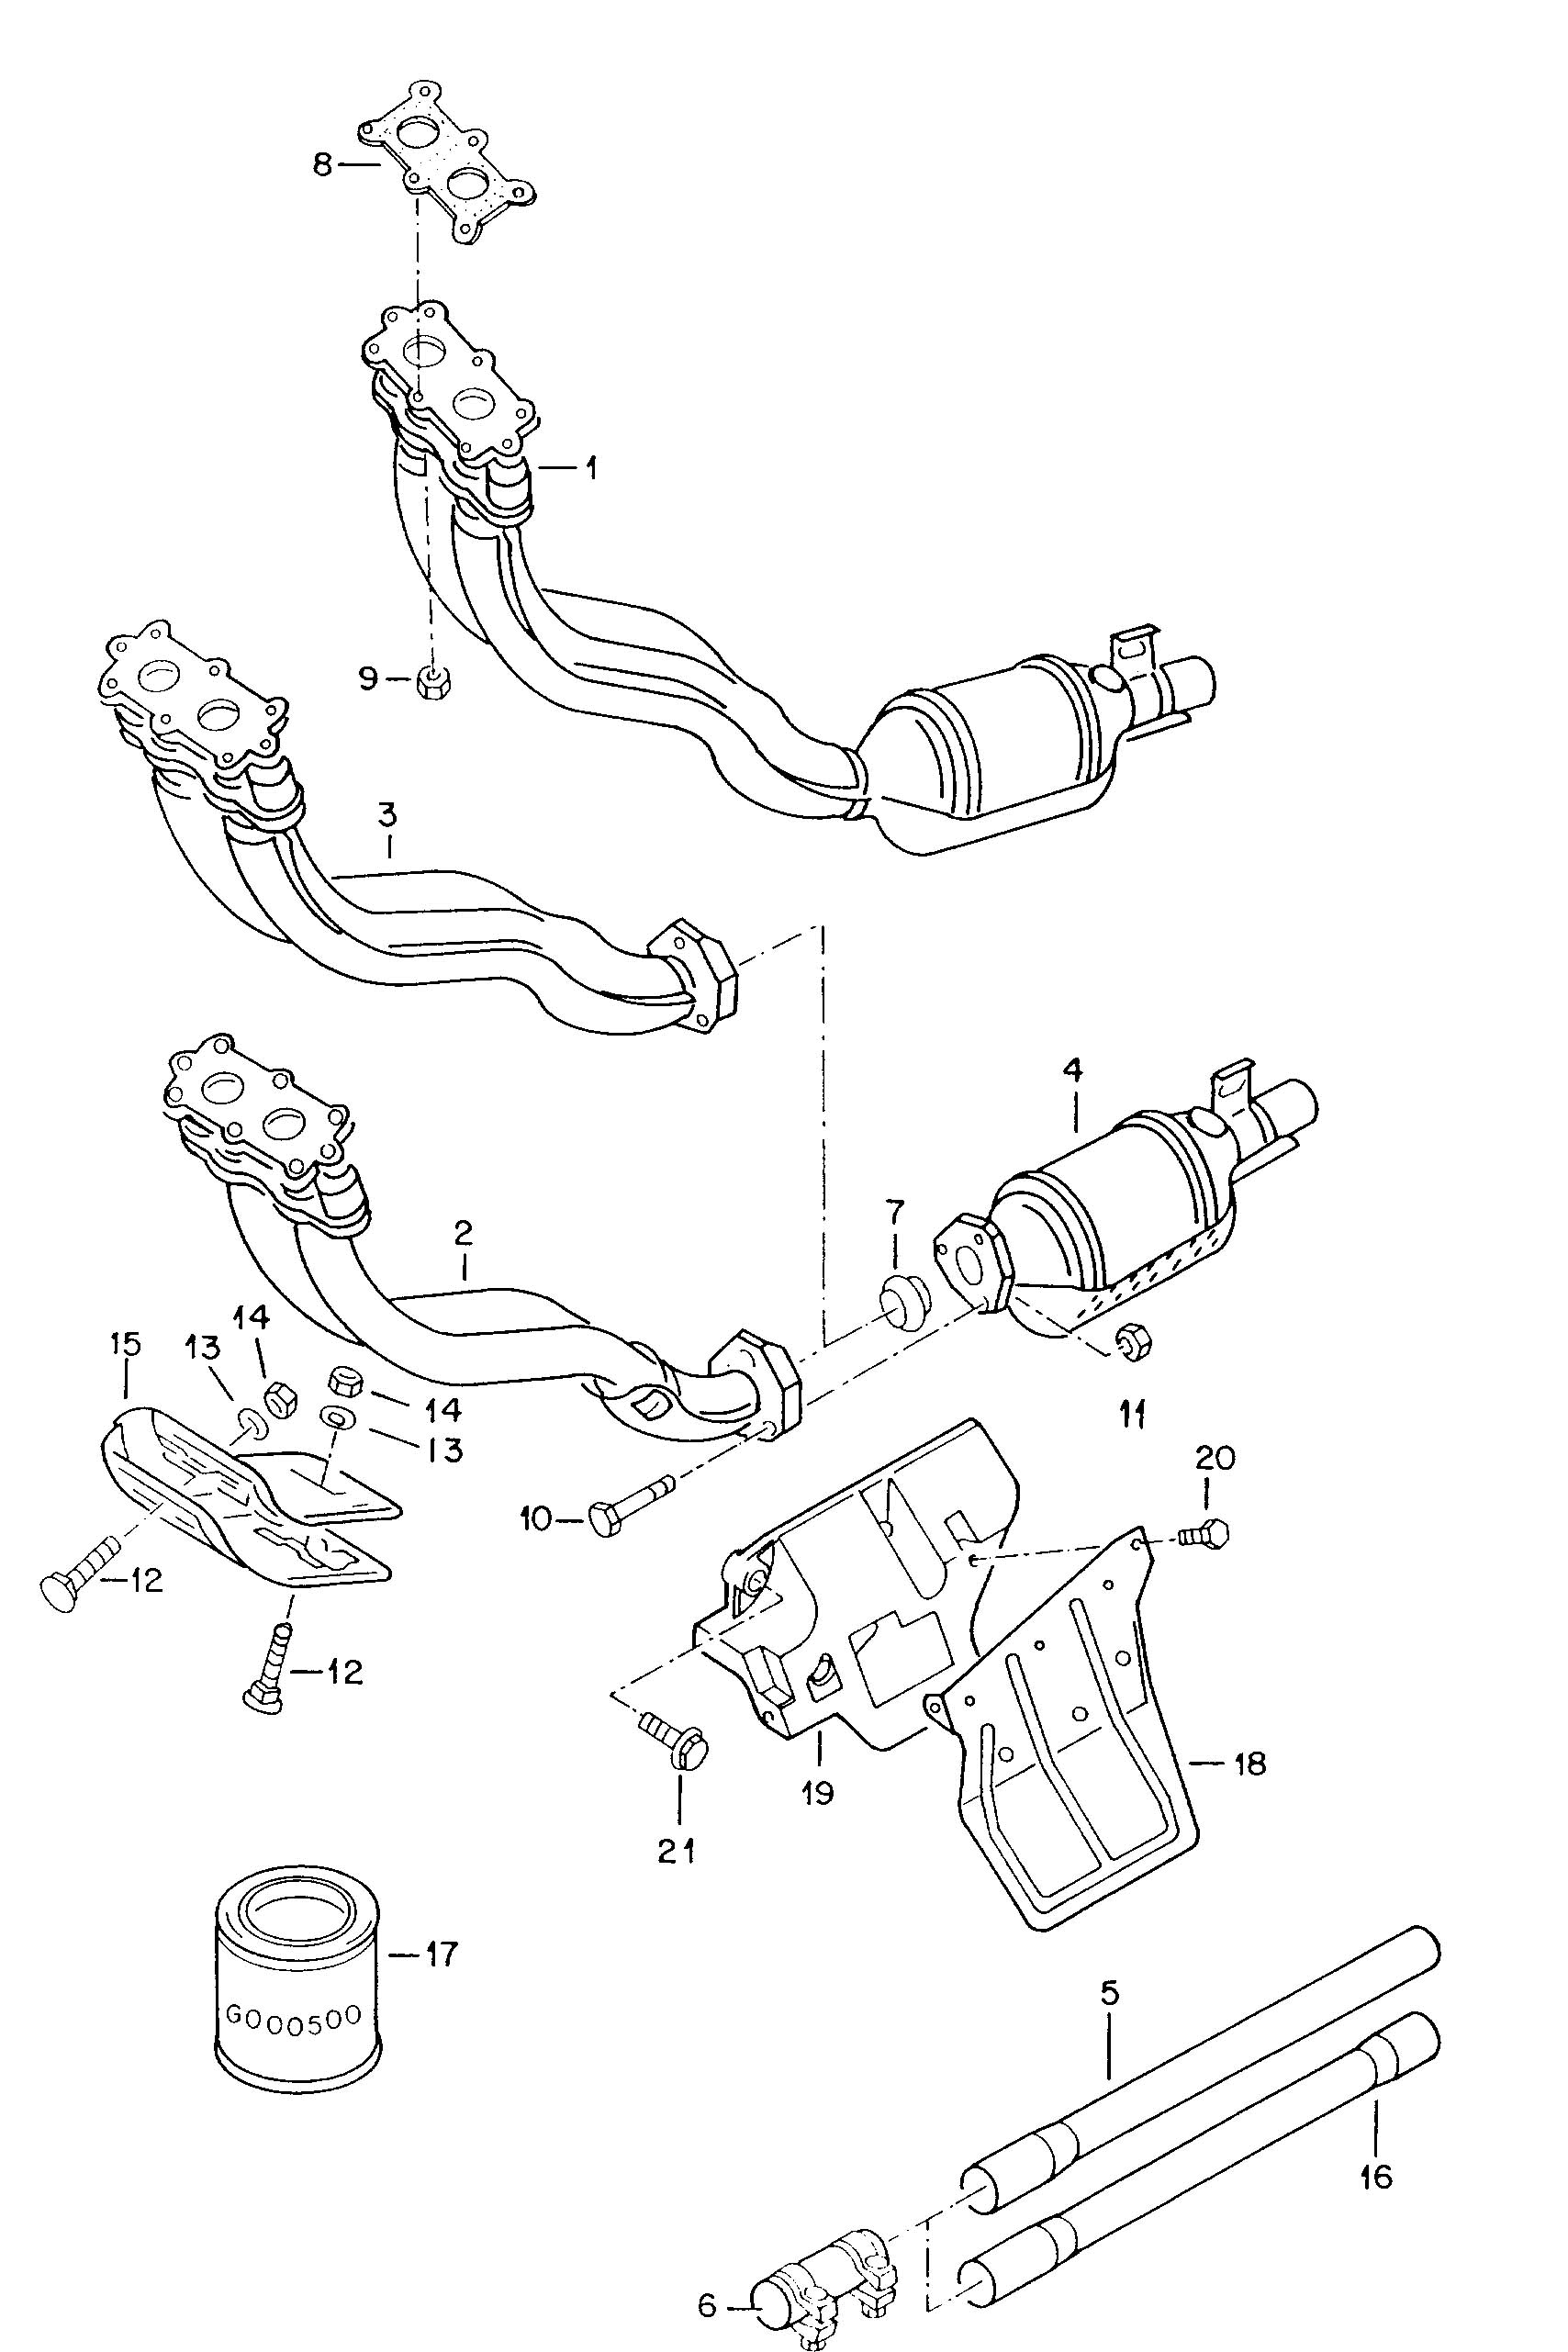 2001 Jetta 2 0l Engine Diagram Wiring Diagrams Vr6 Parts Car And Component Vw 1 8t Serpentine Belt Volkswagen Cooling